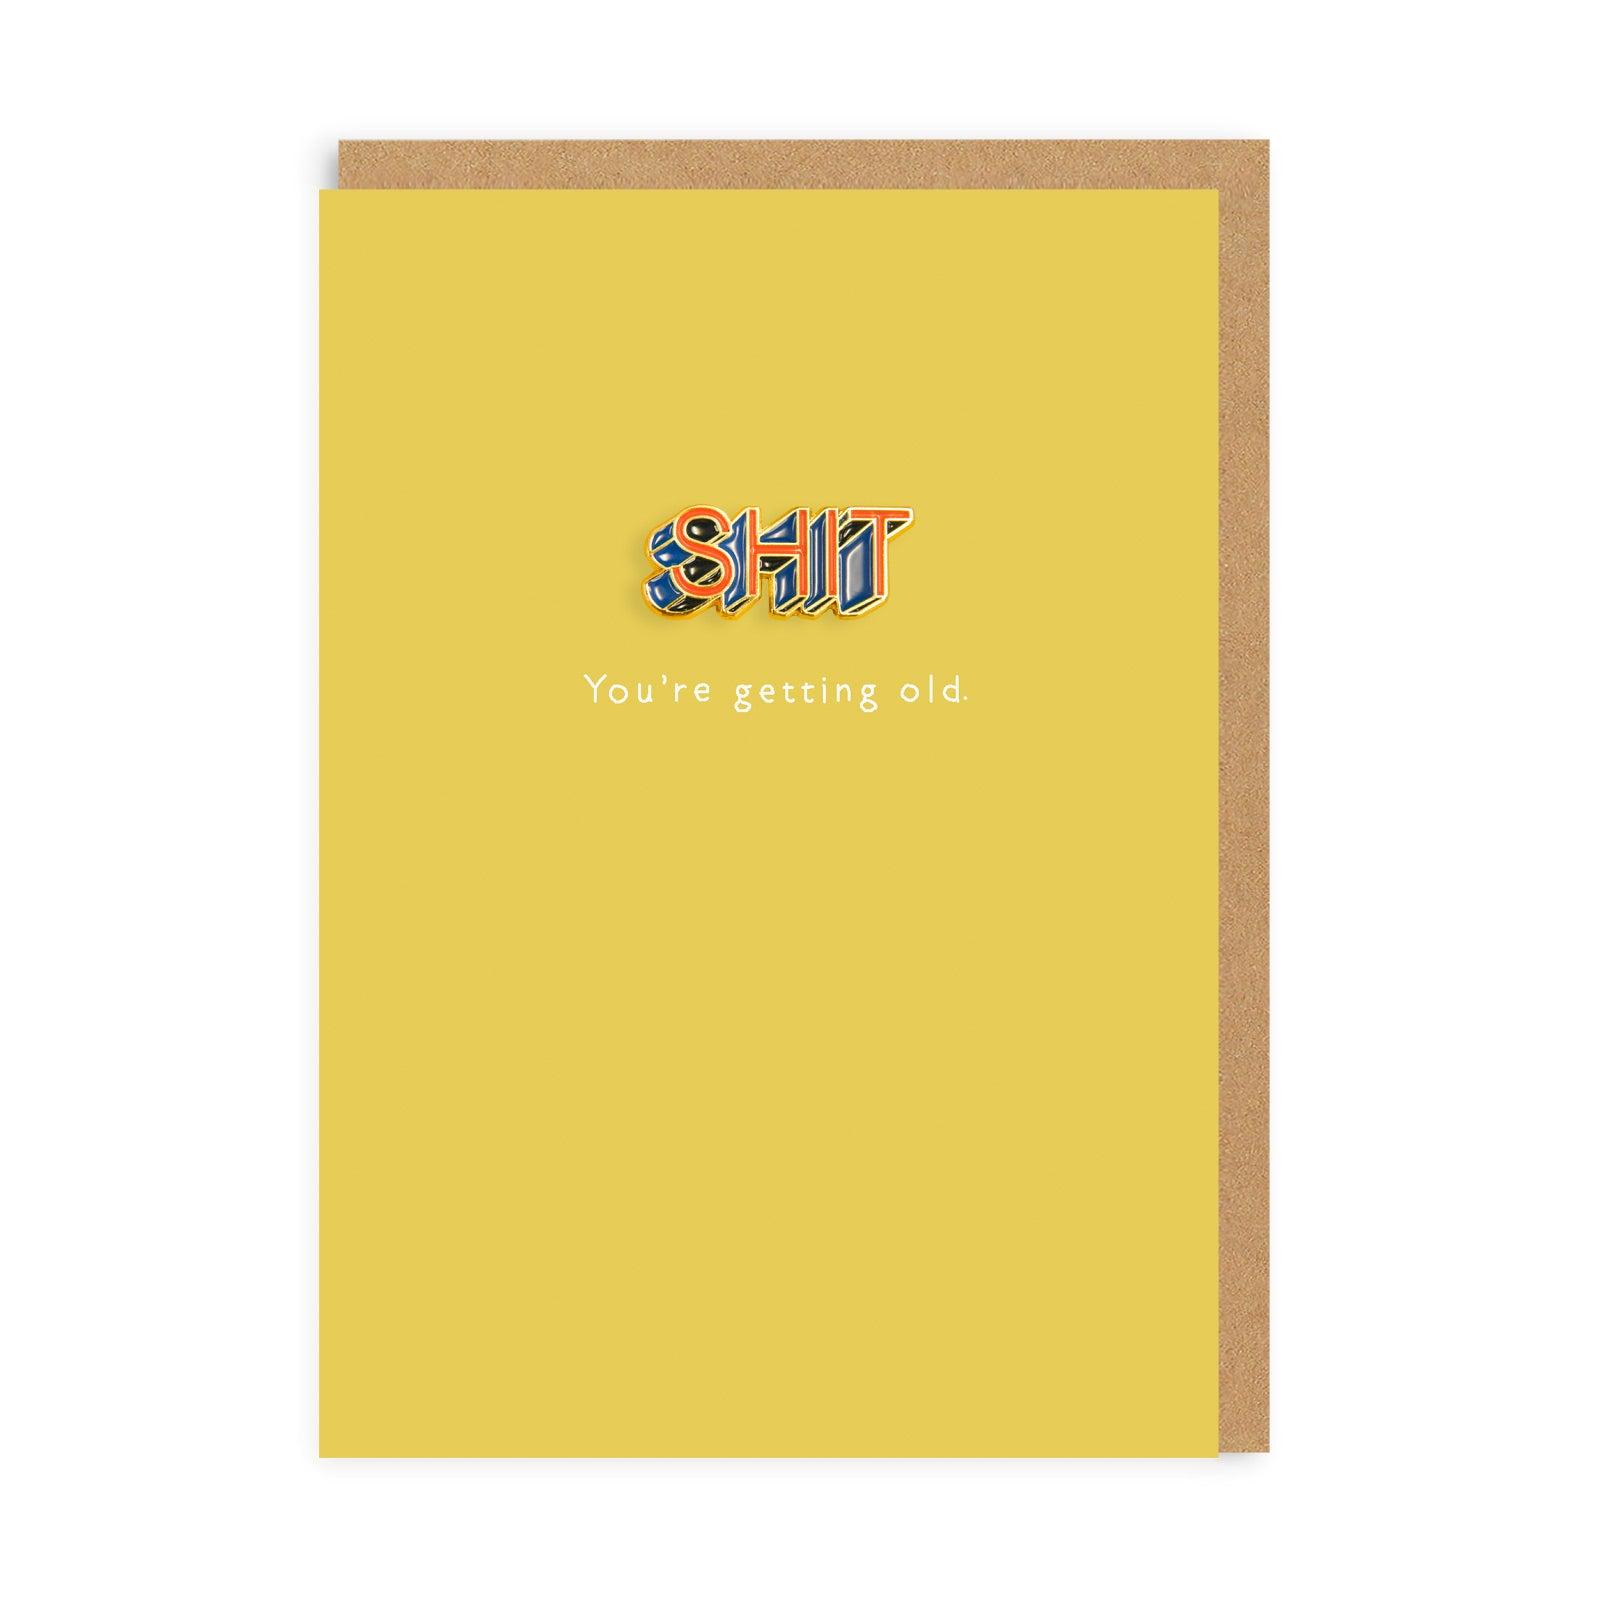 Shit Enamel Pin Greeting Card